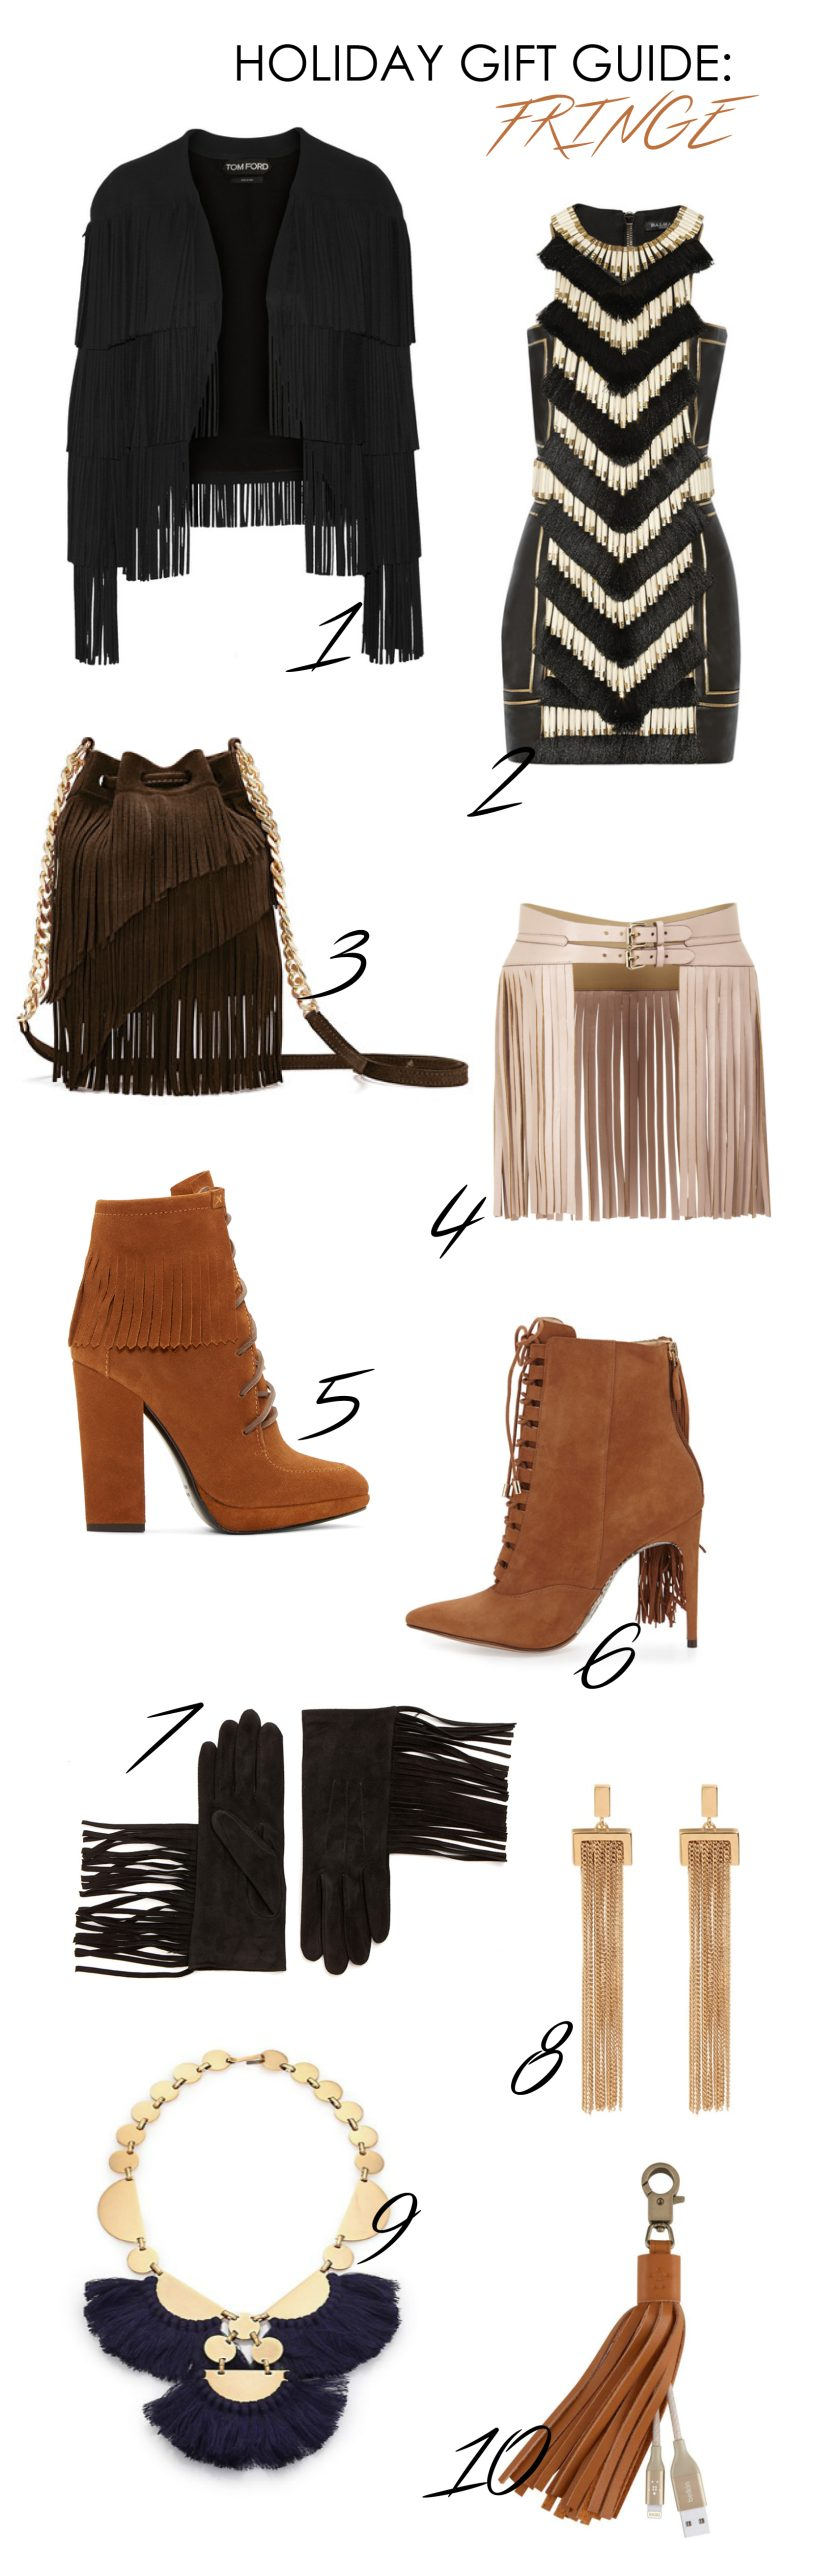 Gift Guide: All FRINGED Out!